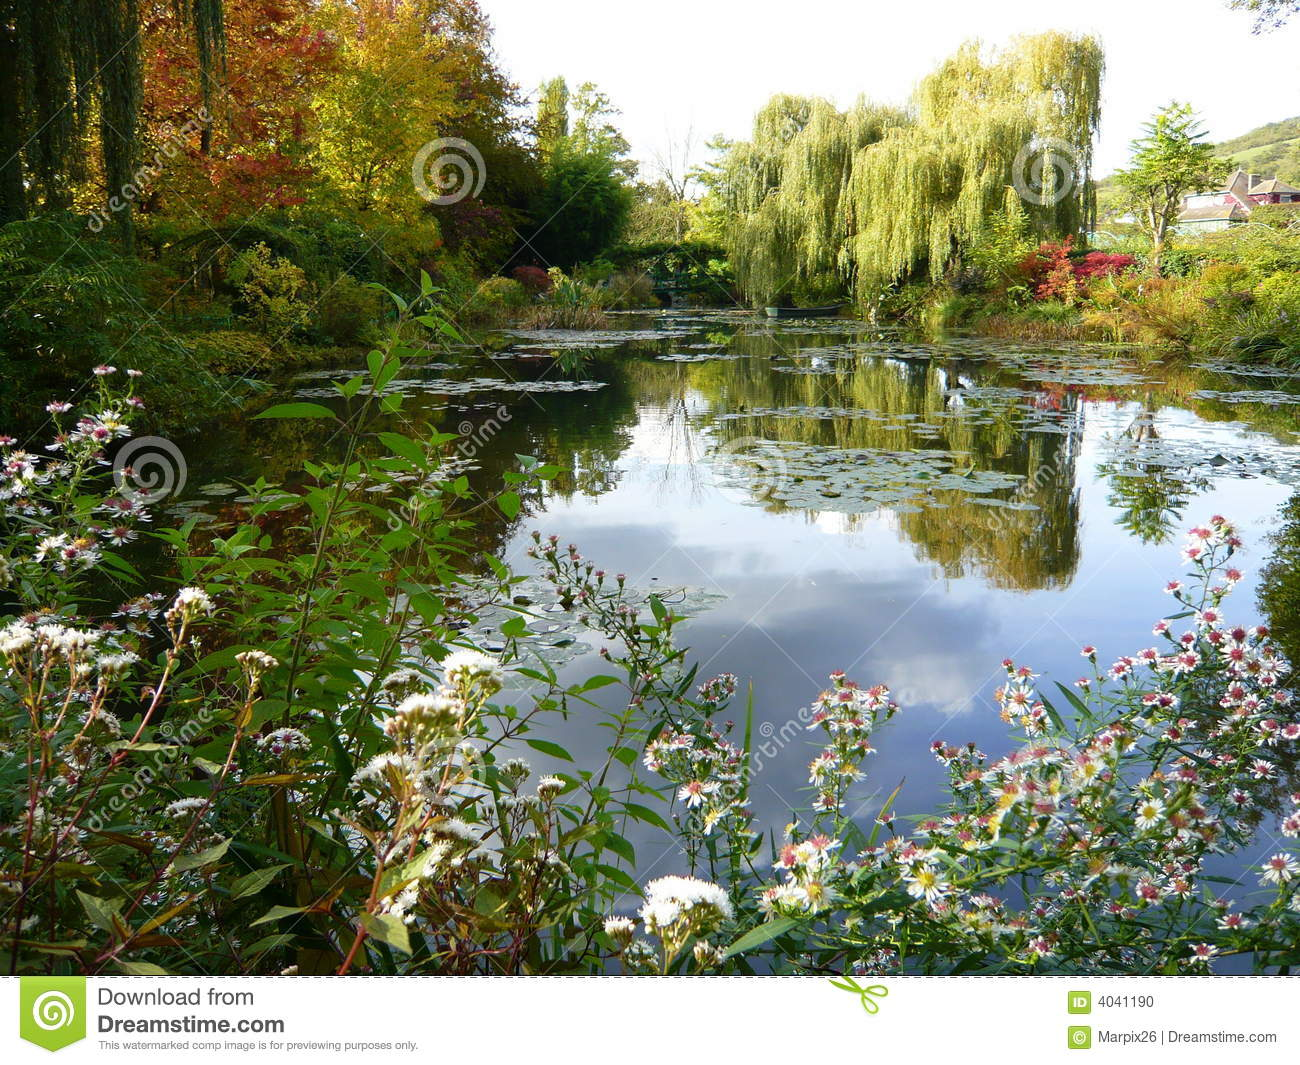 Le jardin de monet giverny france photo stock image for Le jardin de france